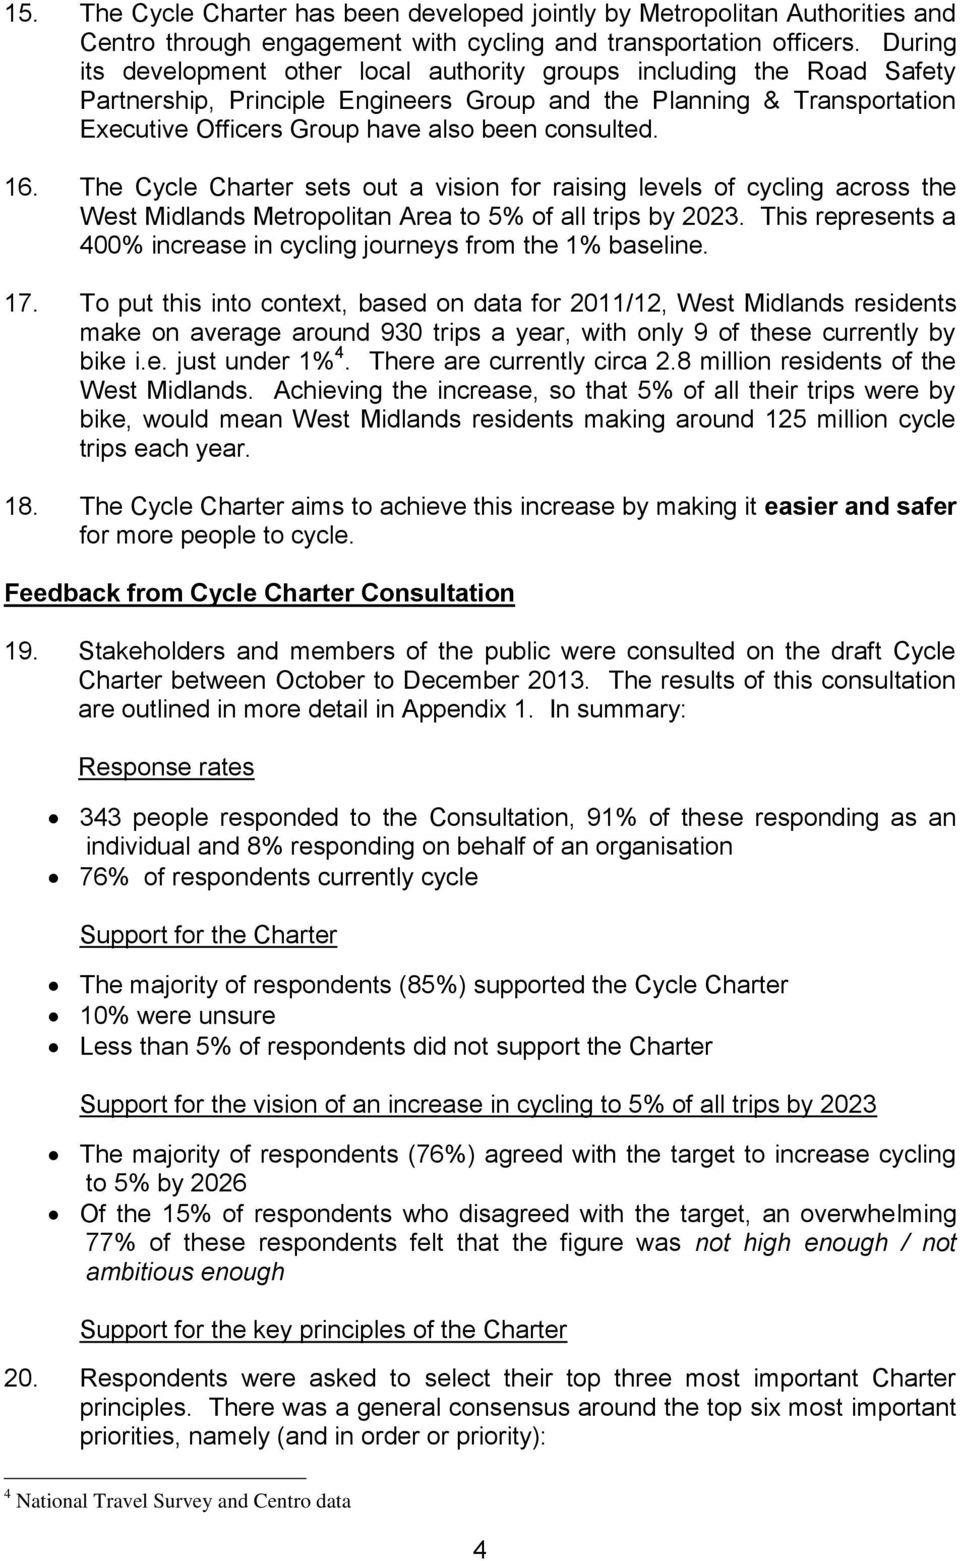 consulted. 16. The Cycle Charter sets out a vision for raising levels of cycling across the West Midlands Metropolitan Area to 5% of all trips by 2023.